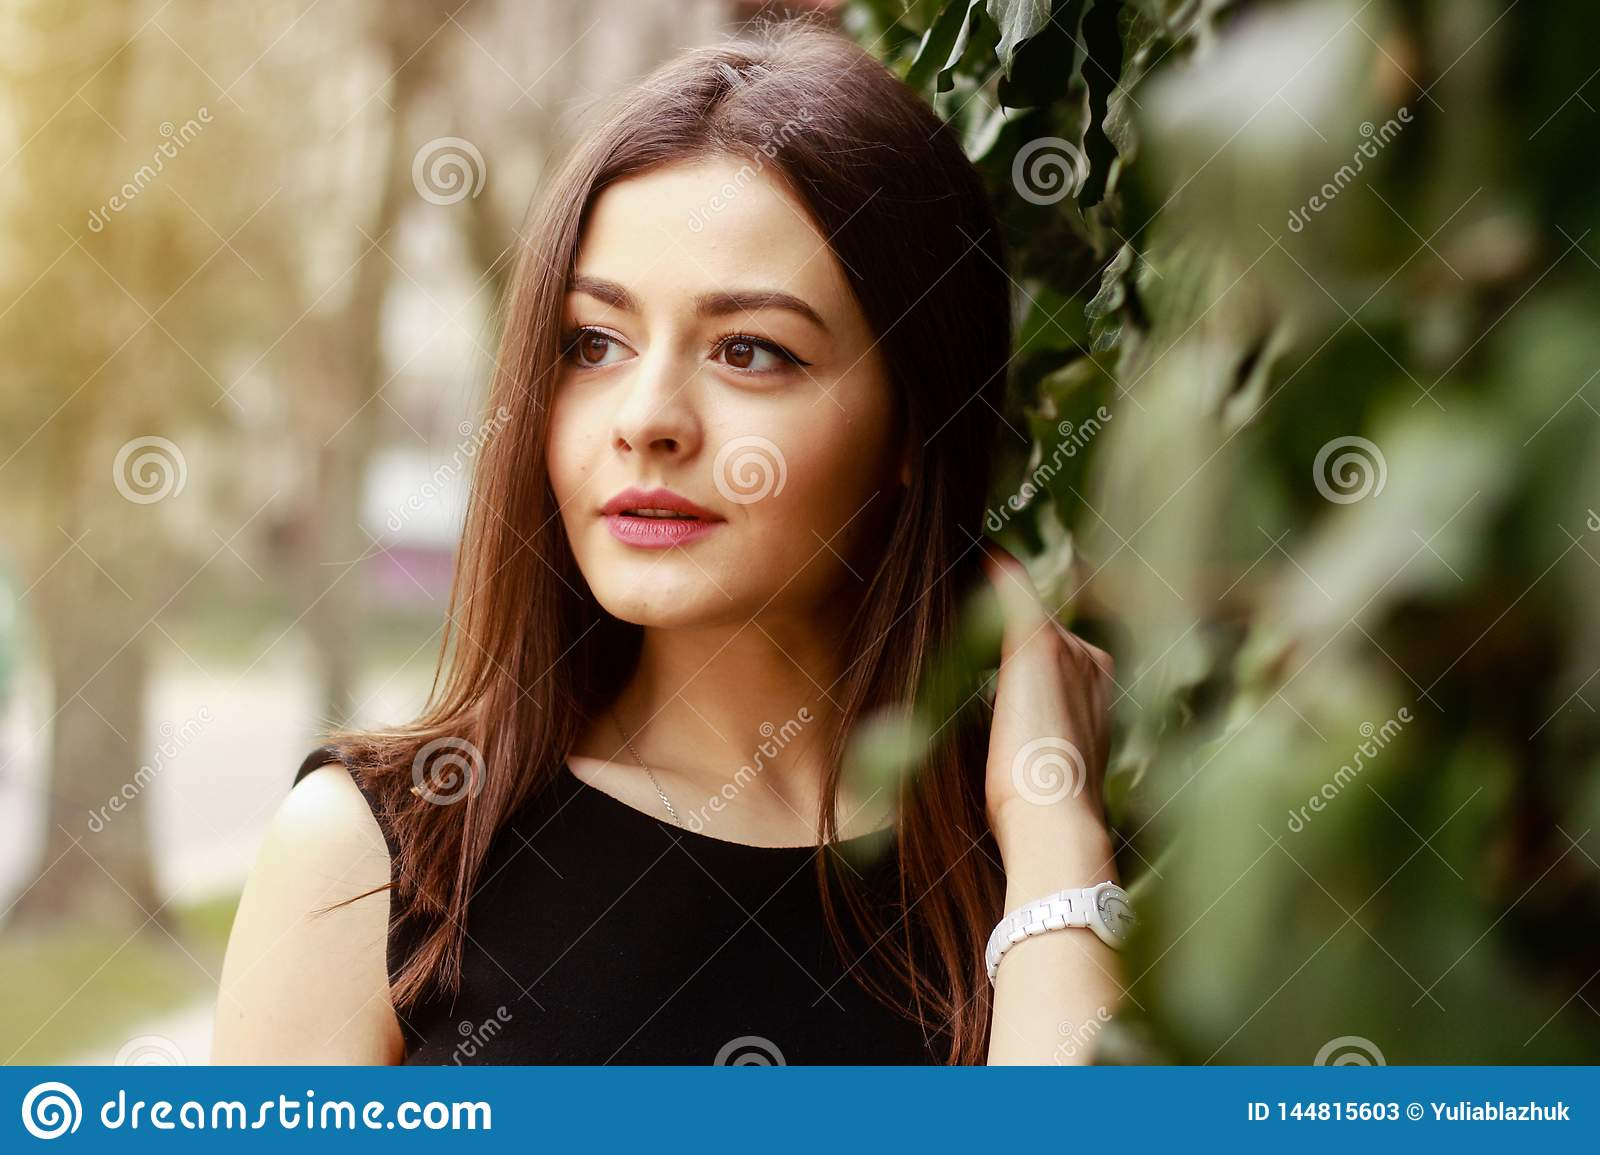 Picture of thoughtful young pretty woman at street